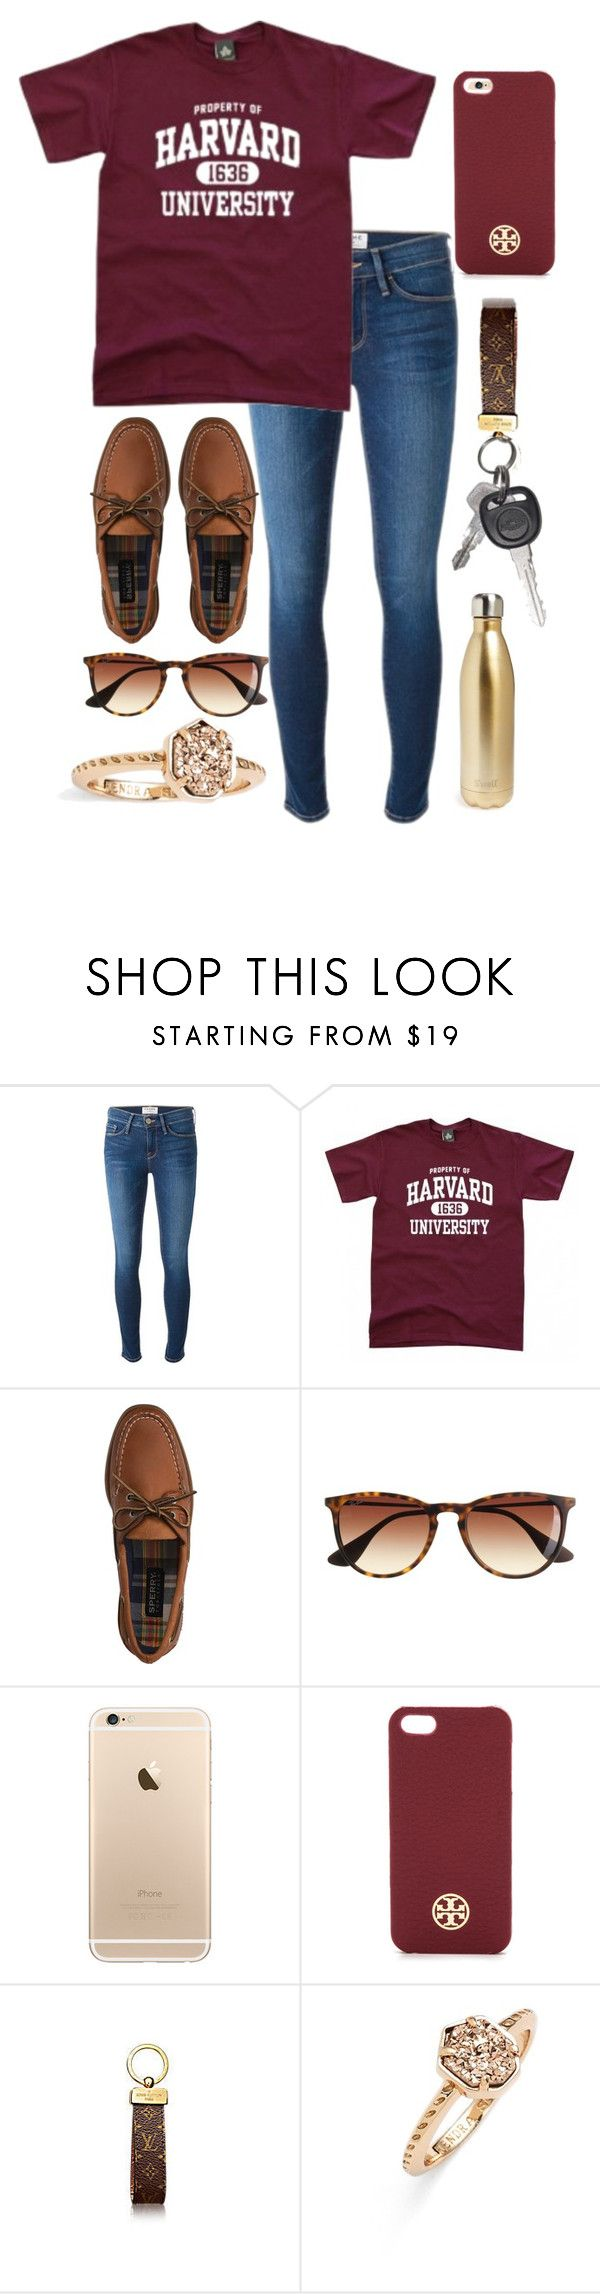 """property of harvard university"" by ansleighrose023 ❤ liked on Polyvore featuring Frame Denim, Sperry Top-Sider, J.Crew, Tory Burch, Kendra Scott, S'well, women's clothing, women's fashion, women and female"